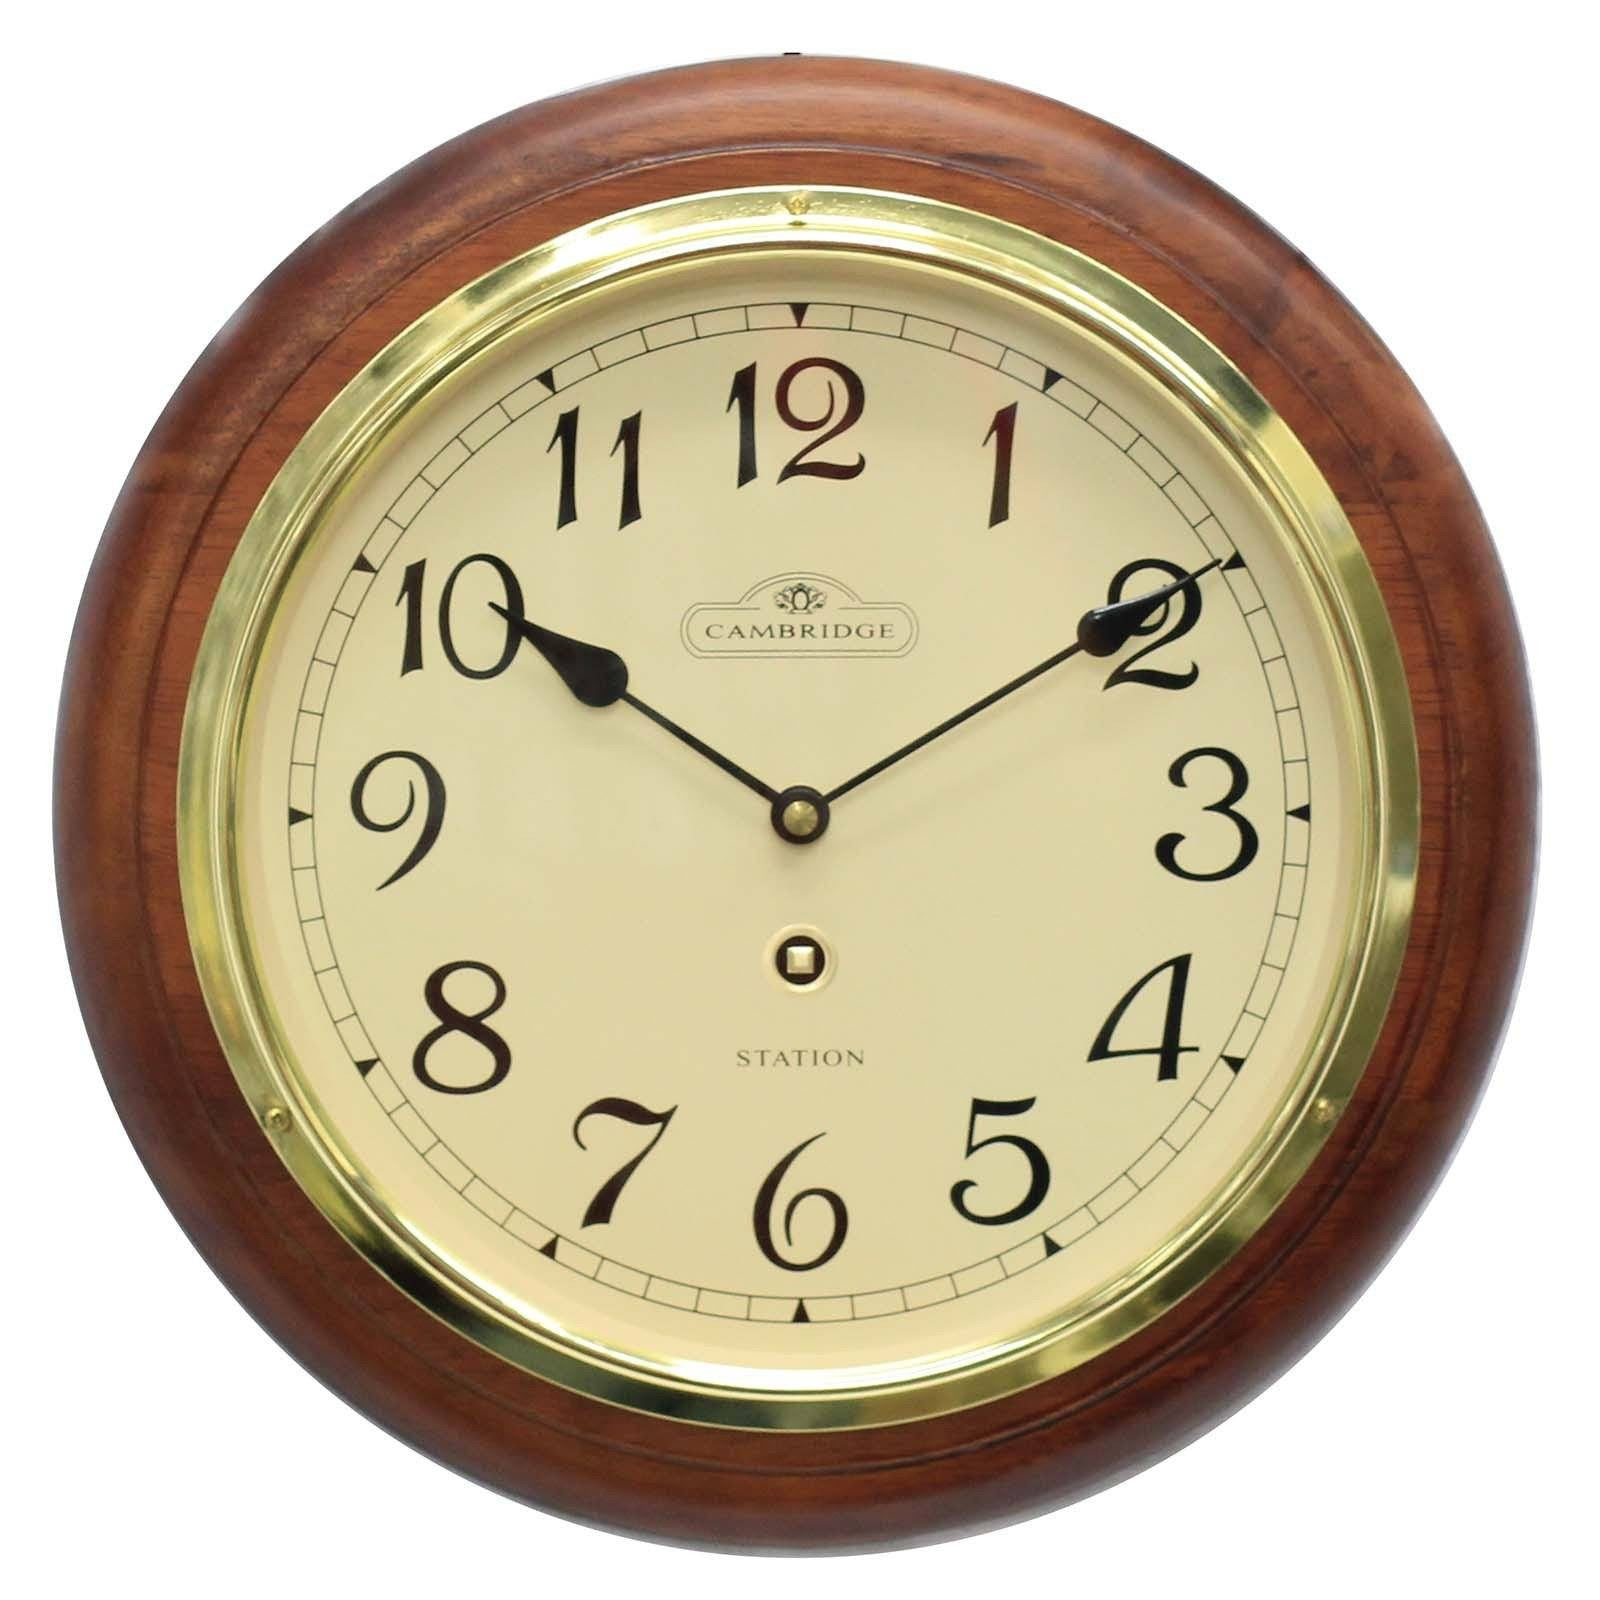 Cambridge Wooden Station Wall Clock Arabic Matte Dark Brown 32cm PW969-15A